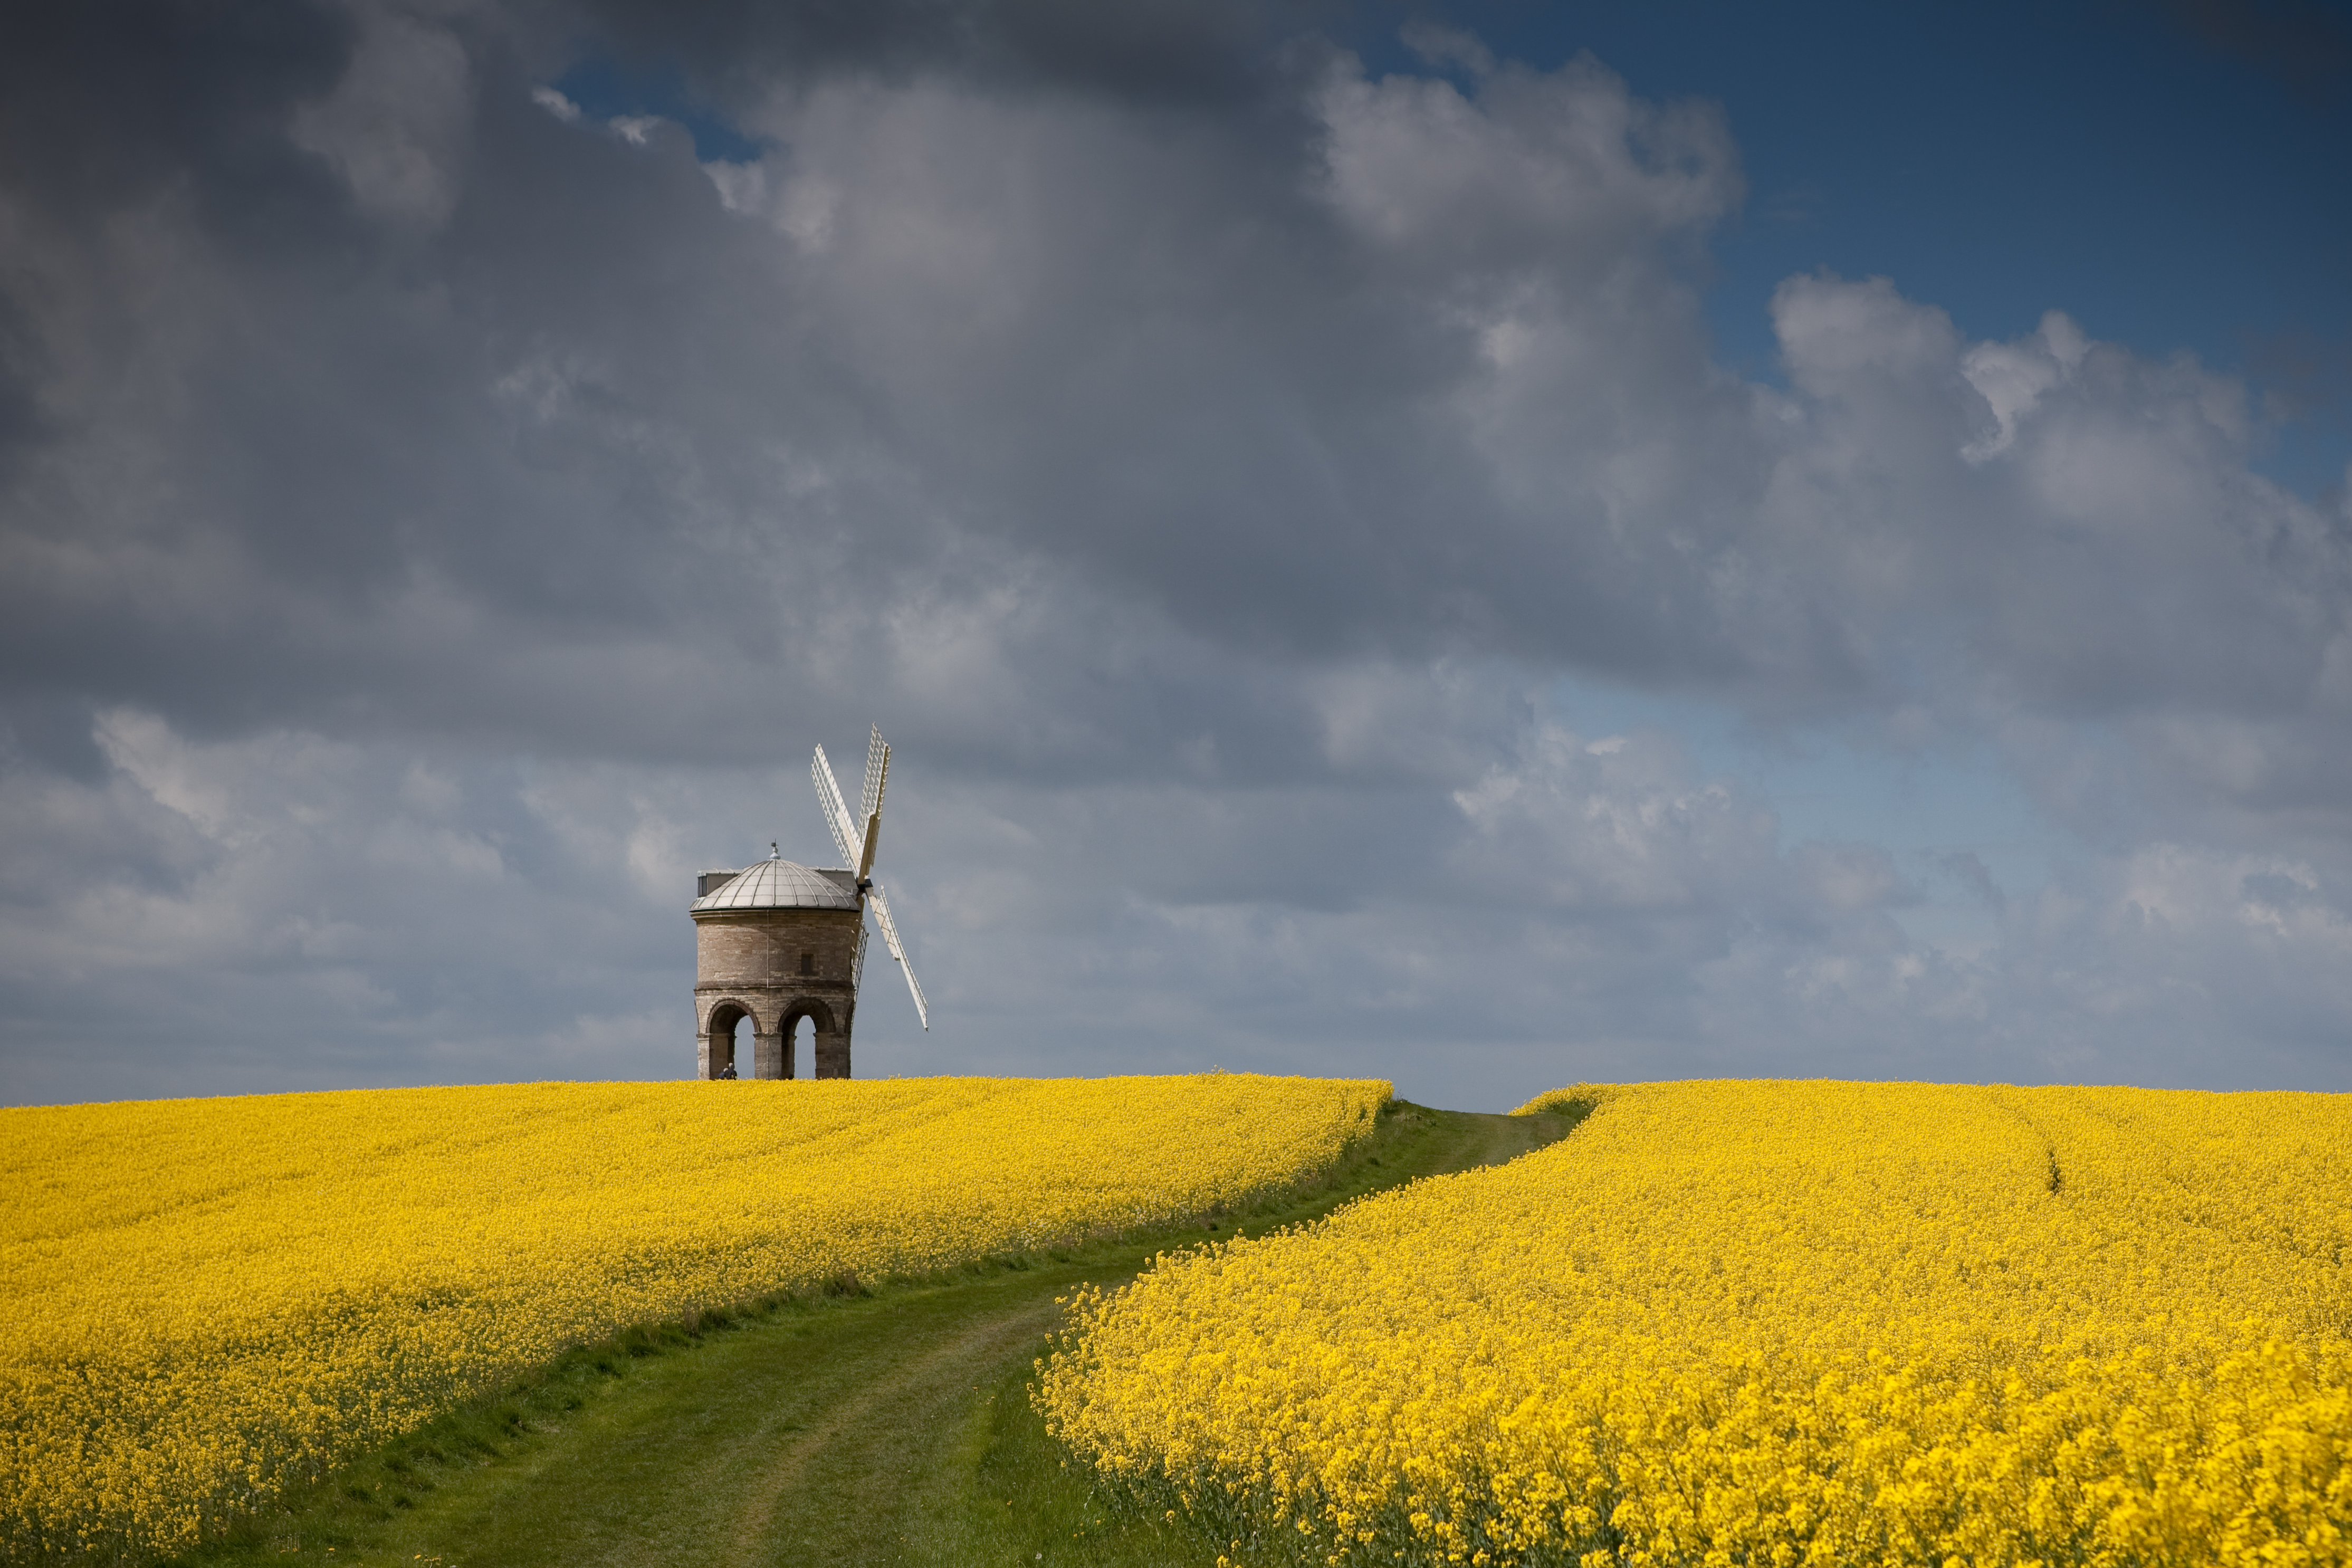 Beginners photography course image   Chesterton Windmill